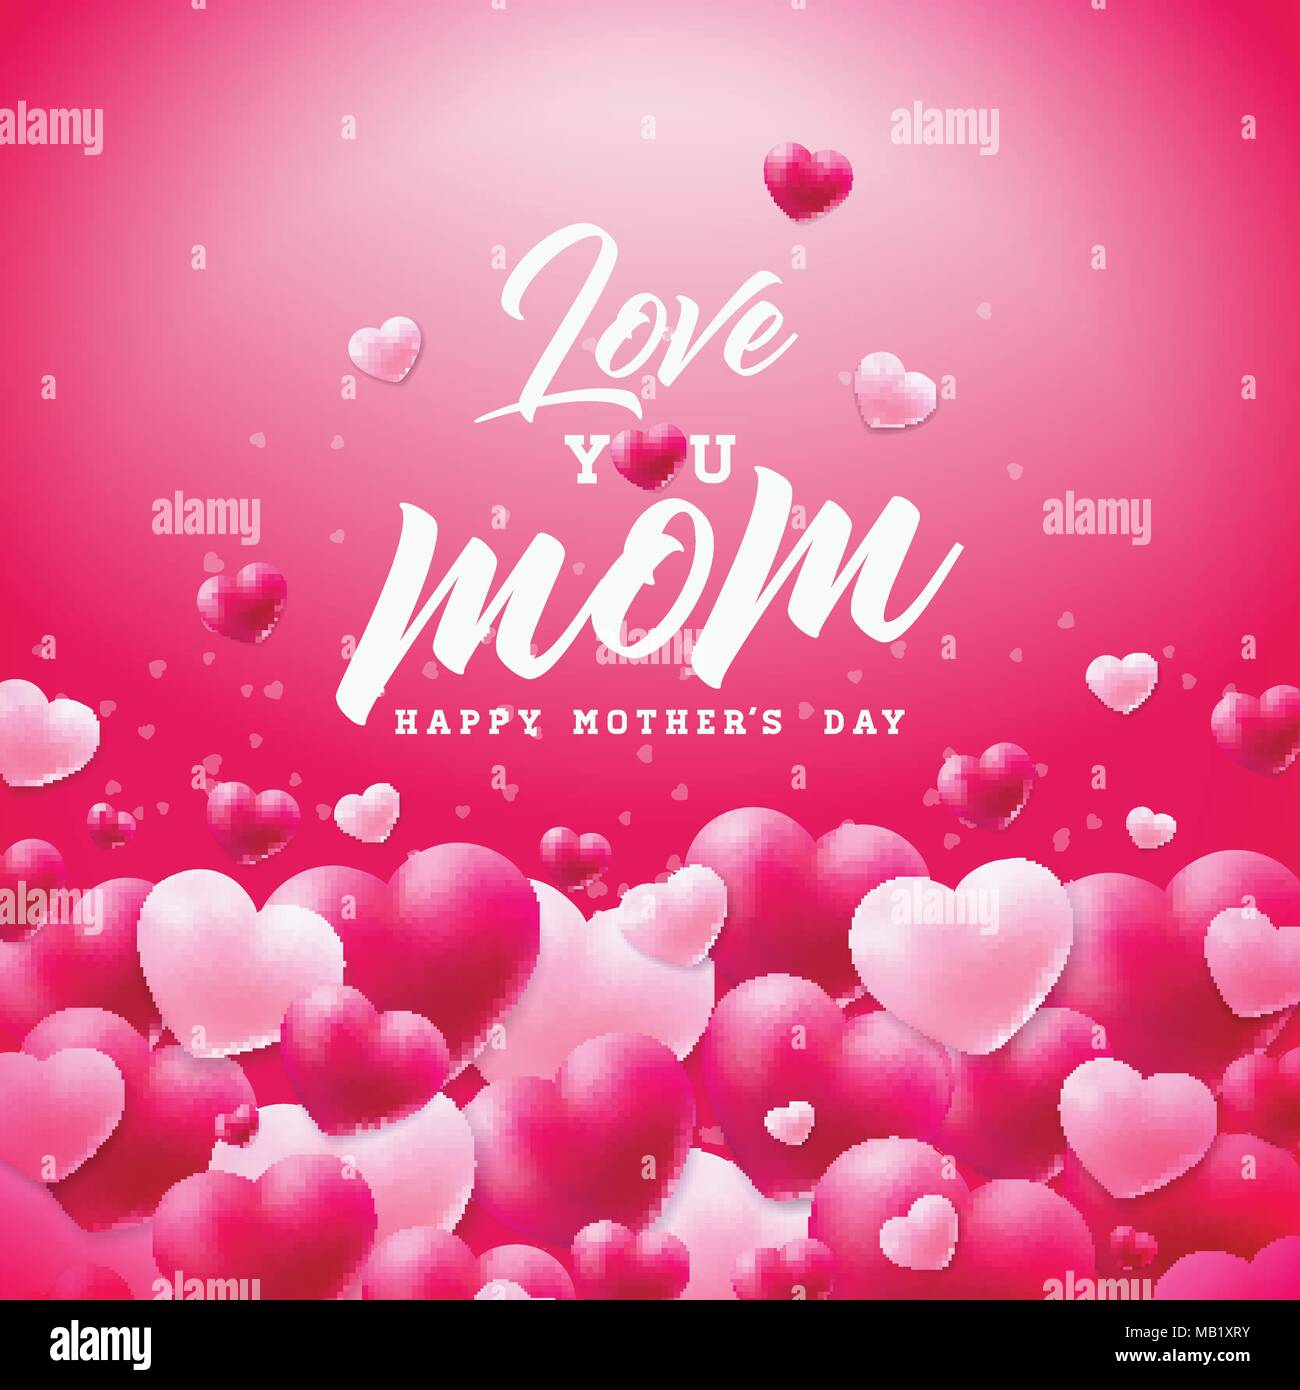 Happy mothers day greeting card design with heart and love you mom happy mothers day greeting card design with heart and love you mom typographic elements on red background vector celebration illustration template for m4hsunfo